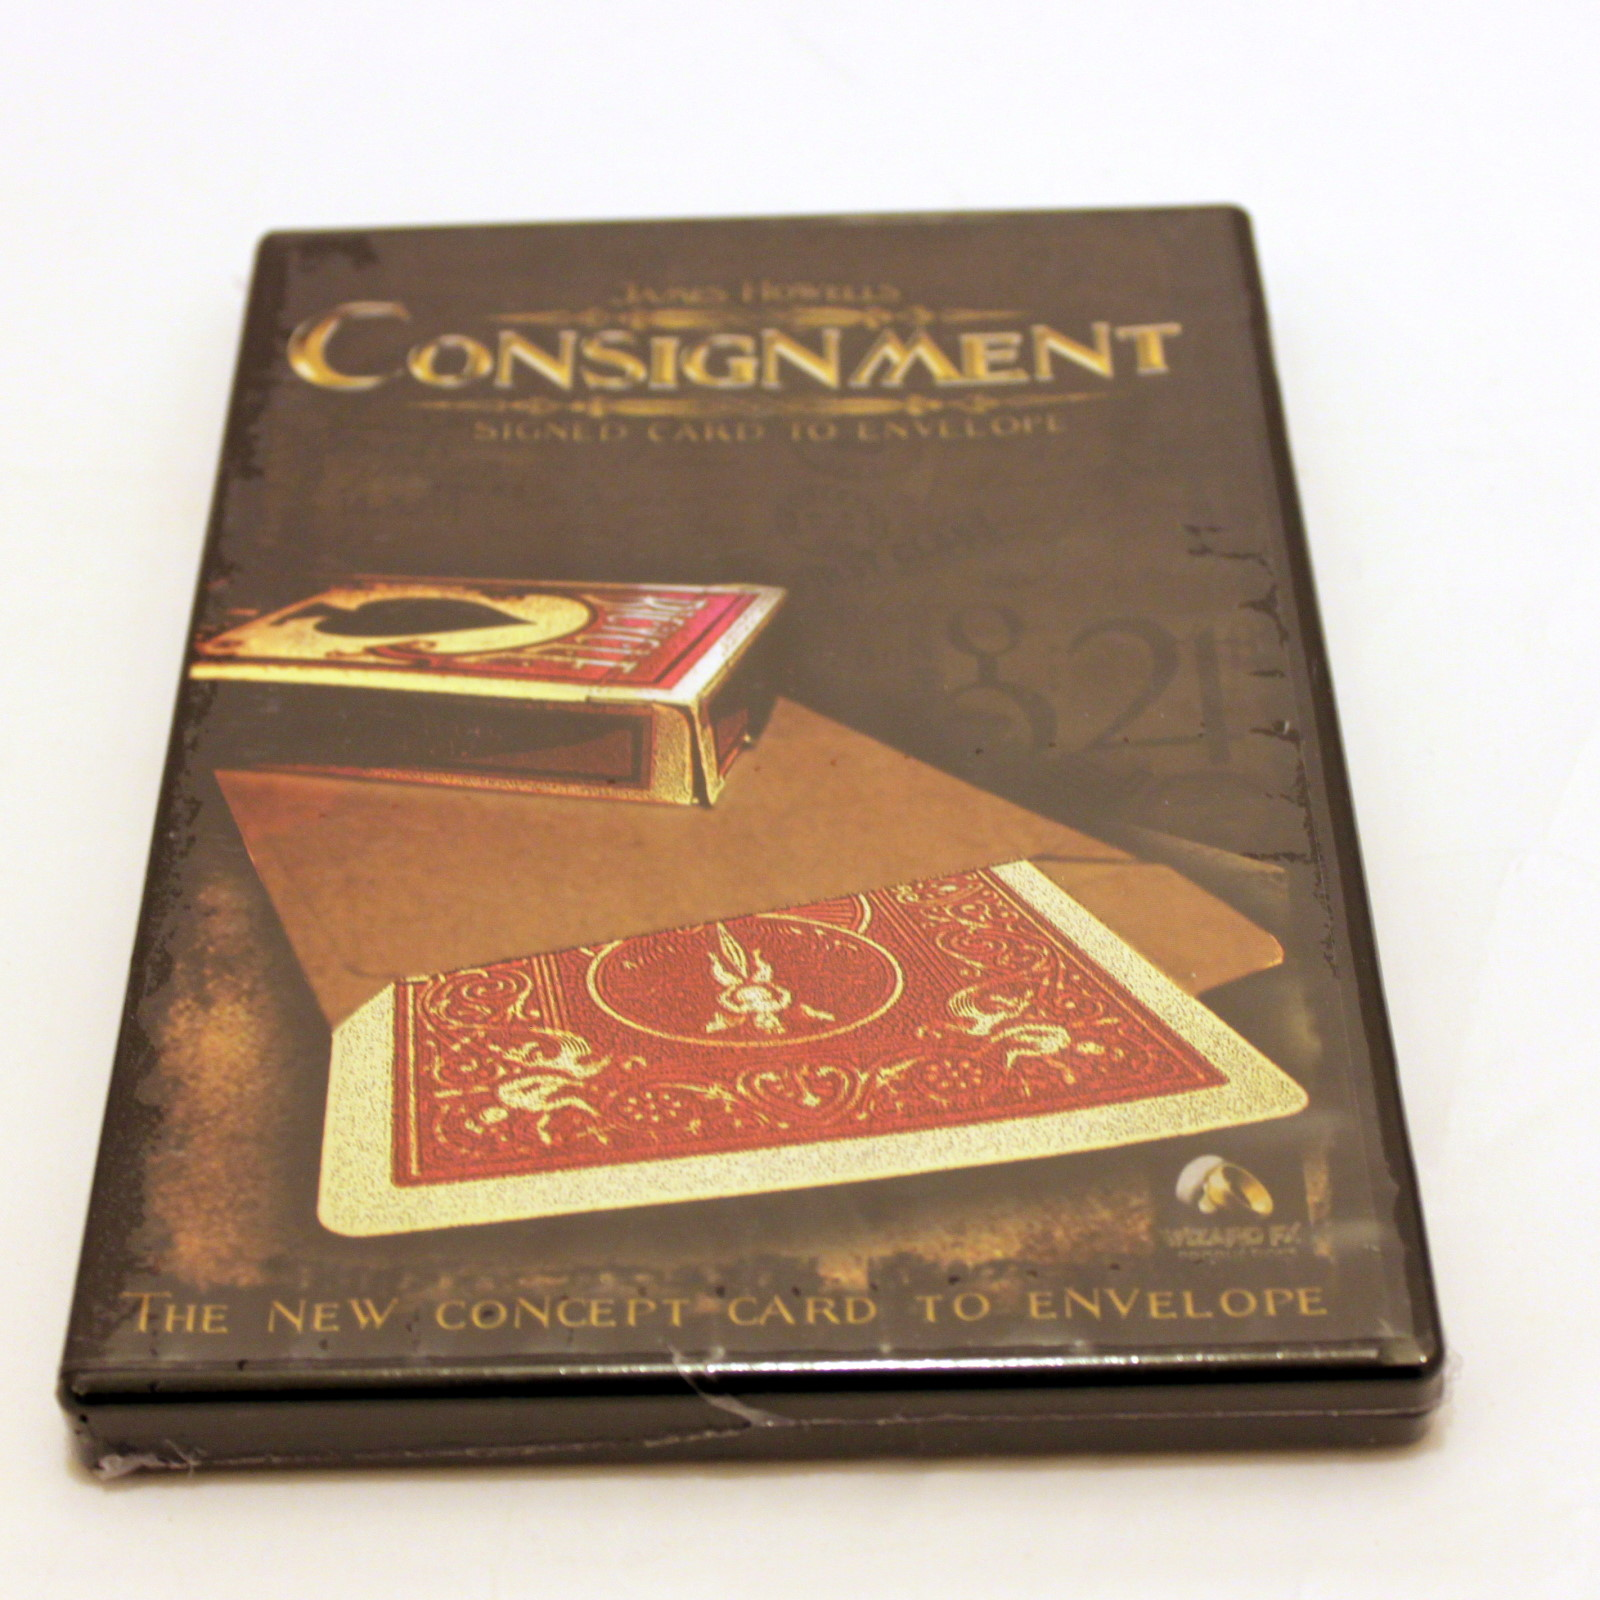 Consignment by James Howells